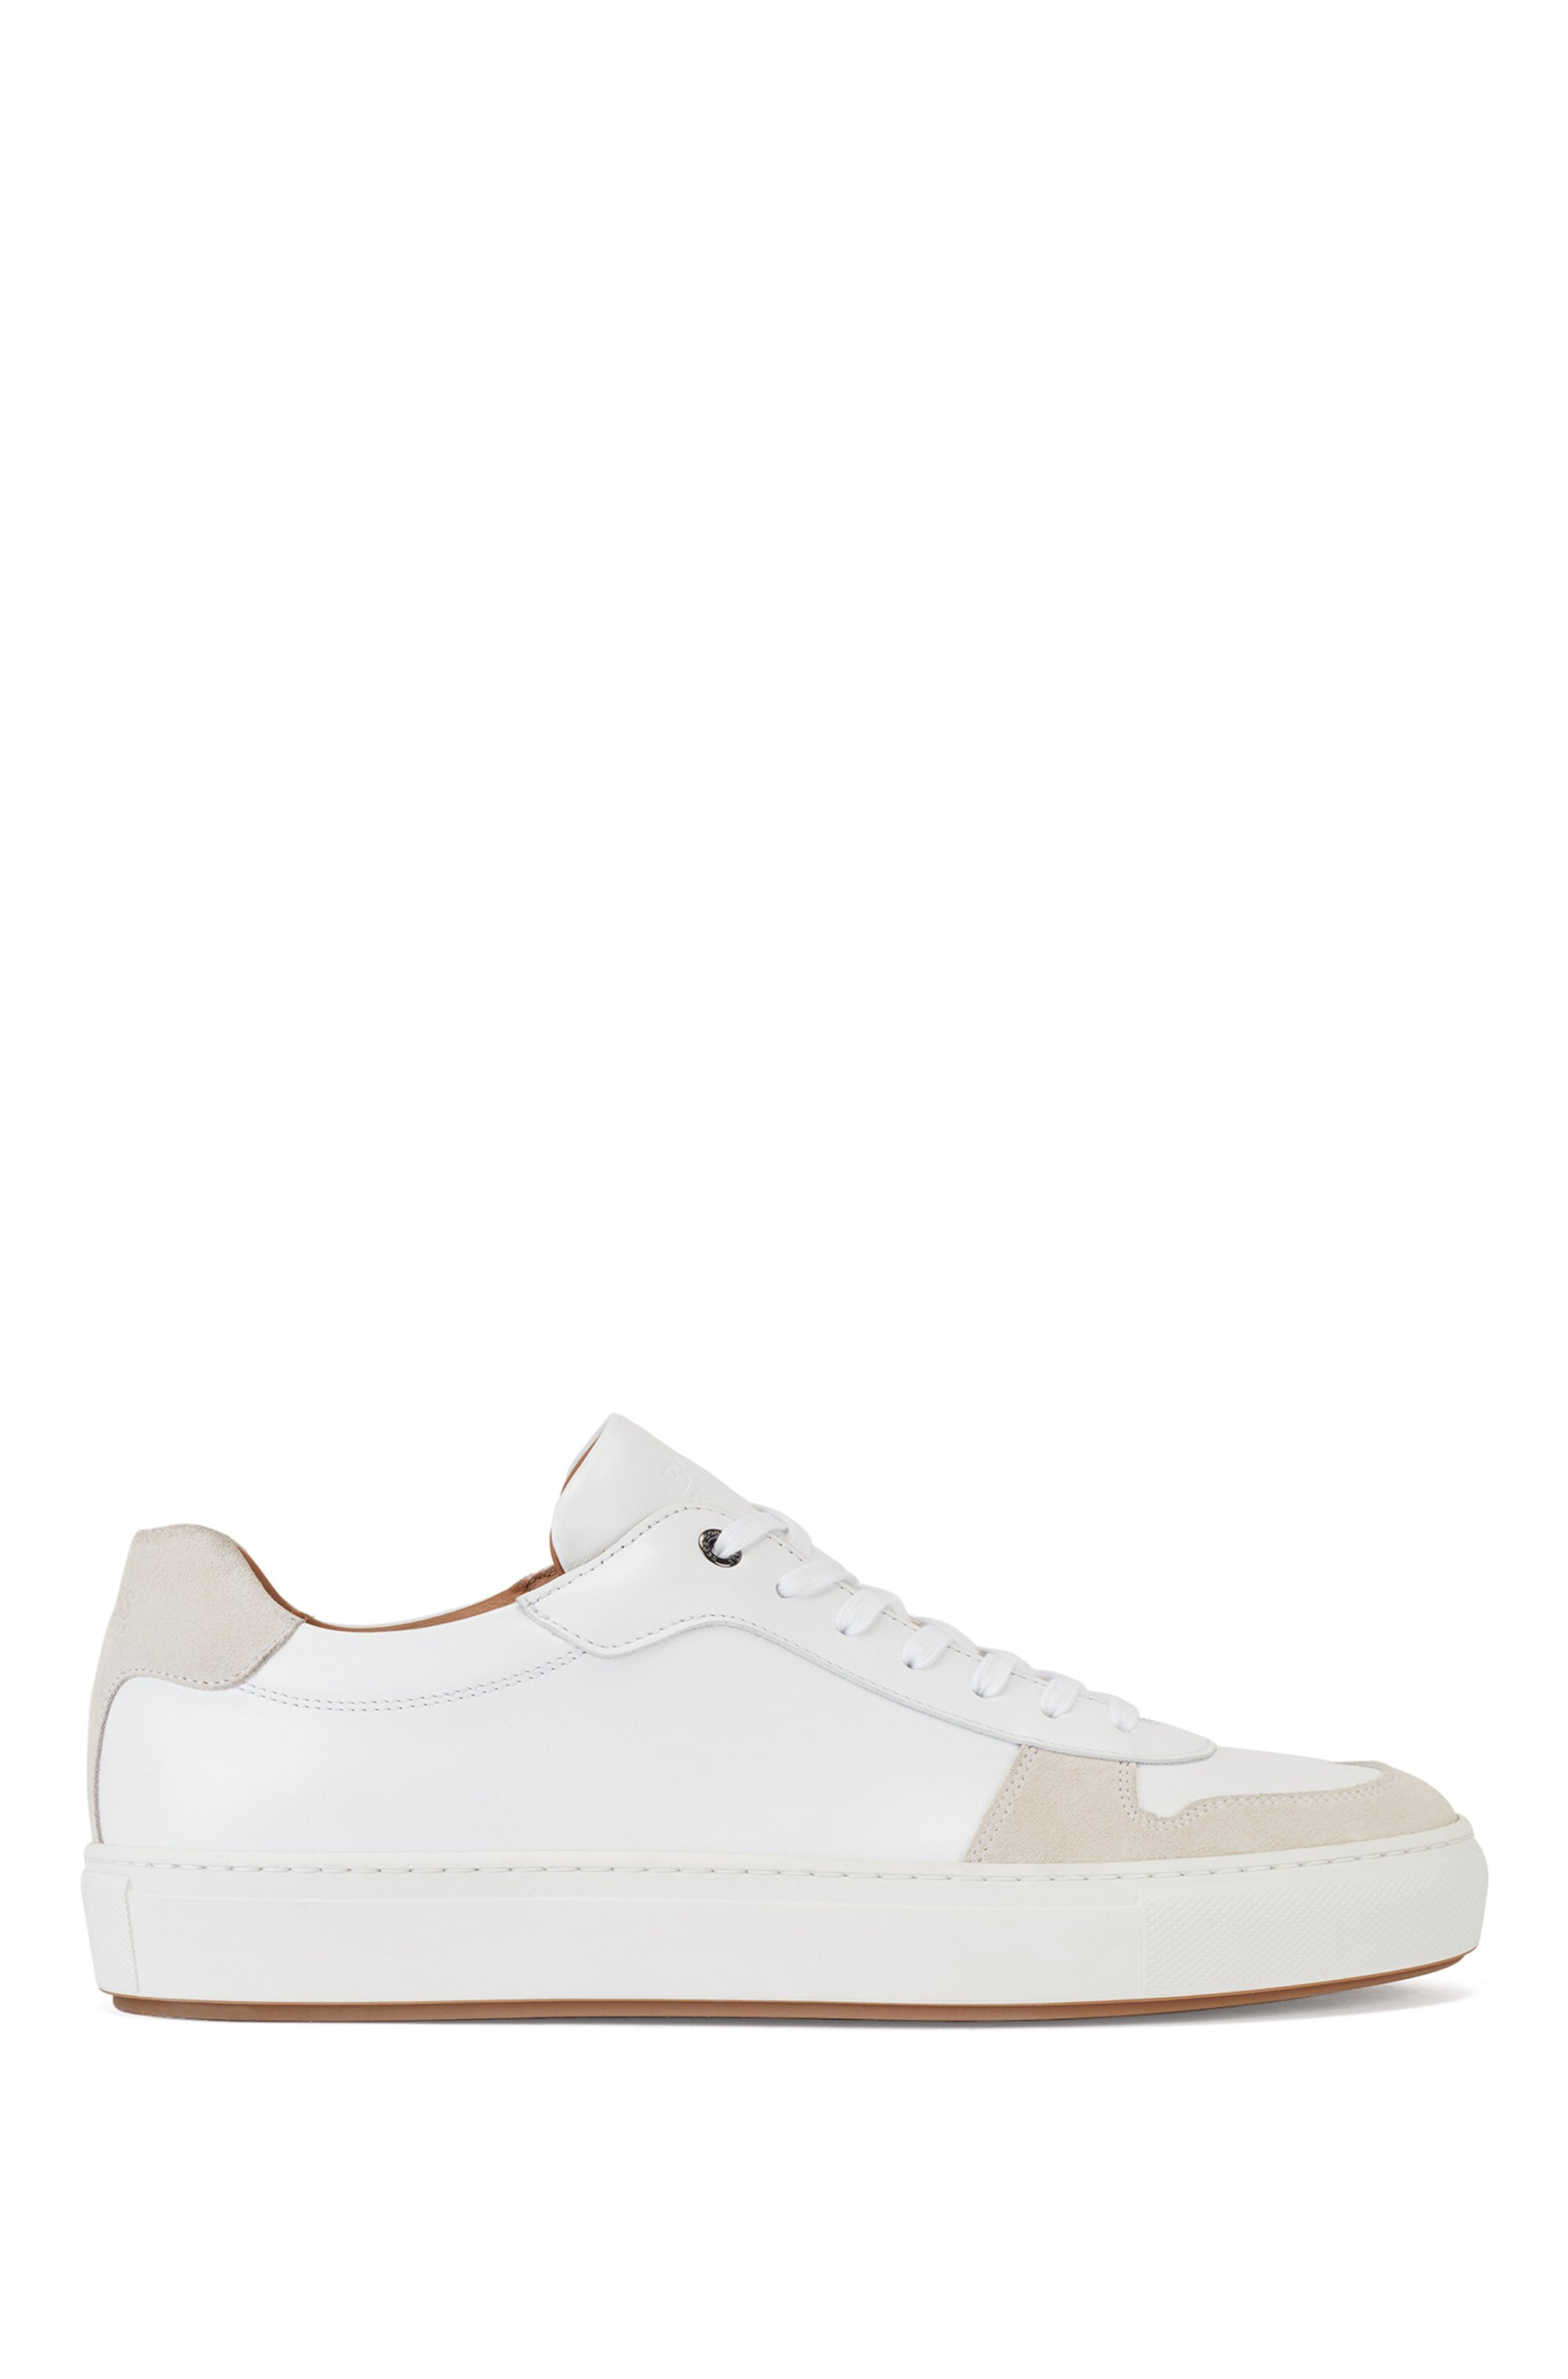 Cupsole trainers in nappa leather and suede, White